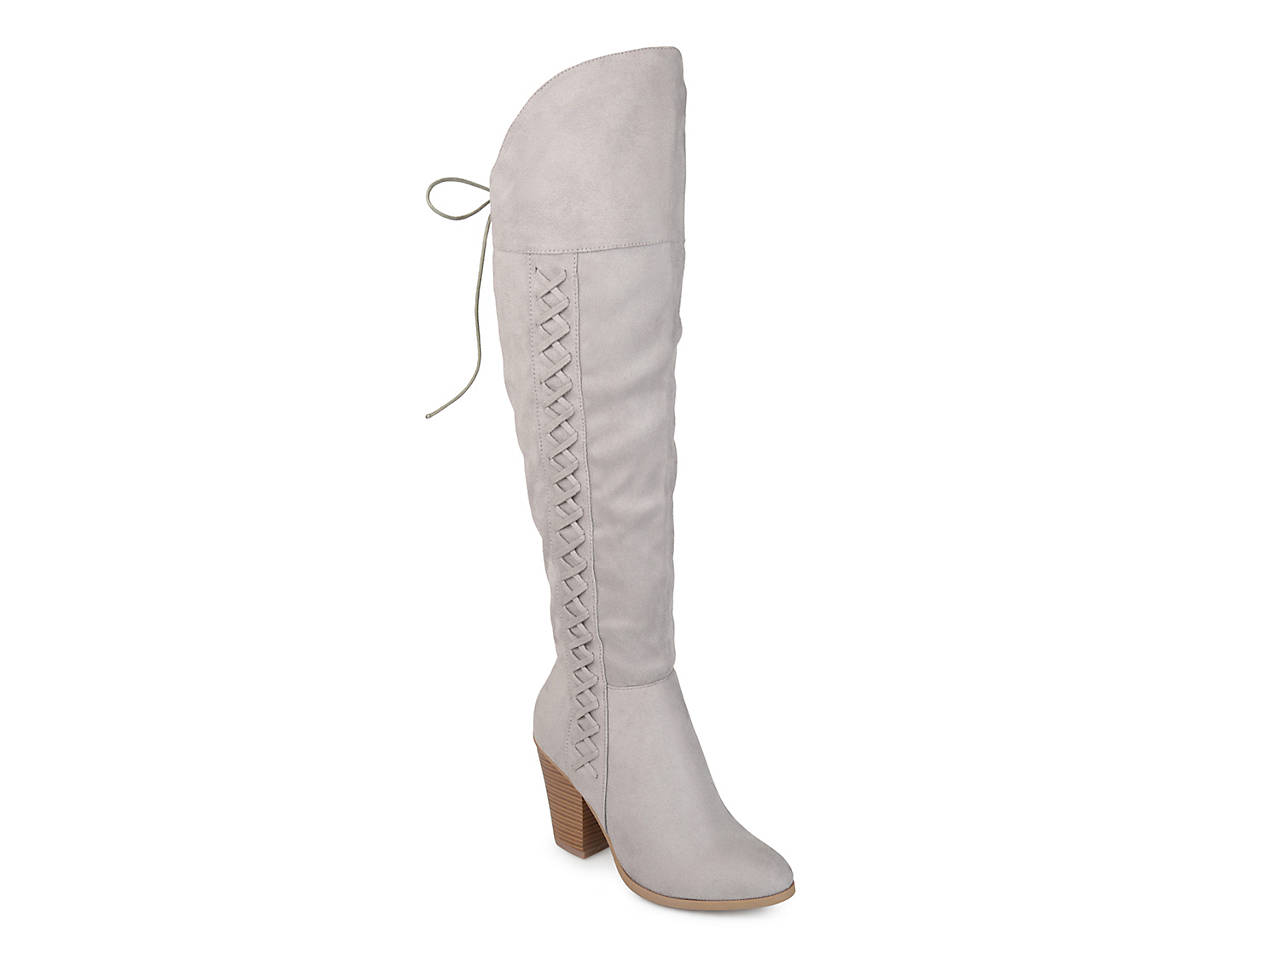 6370fd8158f1 Journee Collection Spritz Over The Knee Boot Women's Shoes | DSW